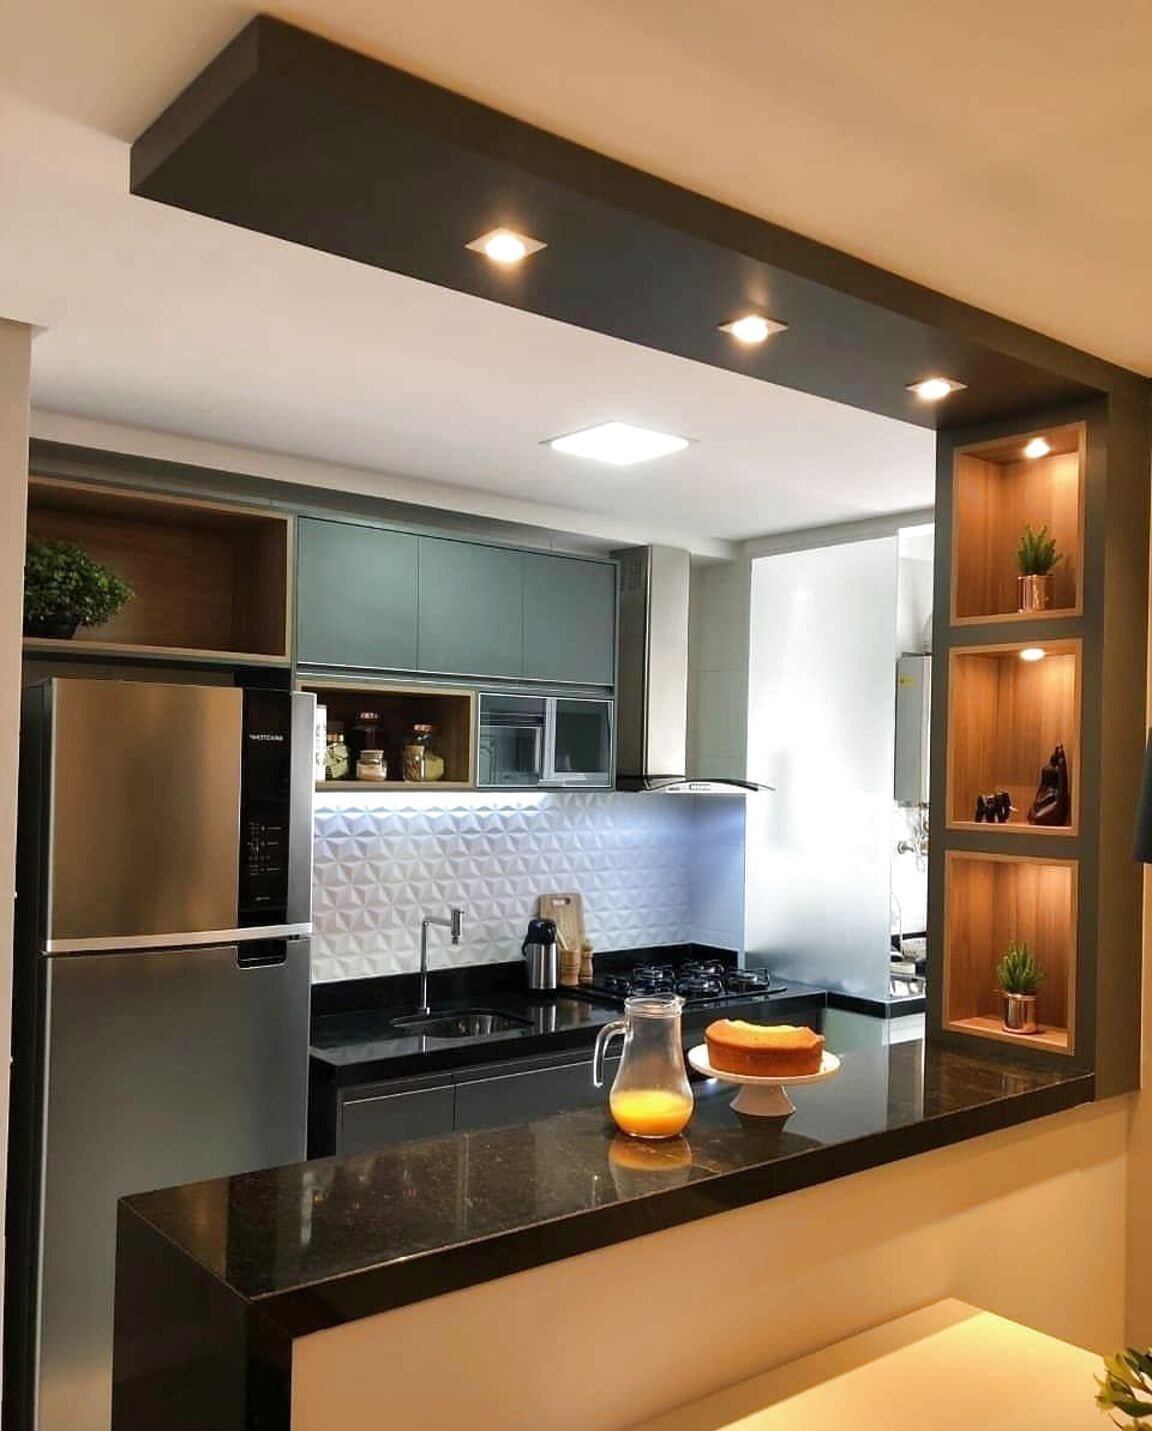 Kitchen Ceiling Ideas (Vaulted and 3D Drop Ceiling) in ...